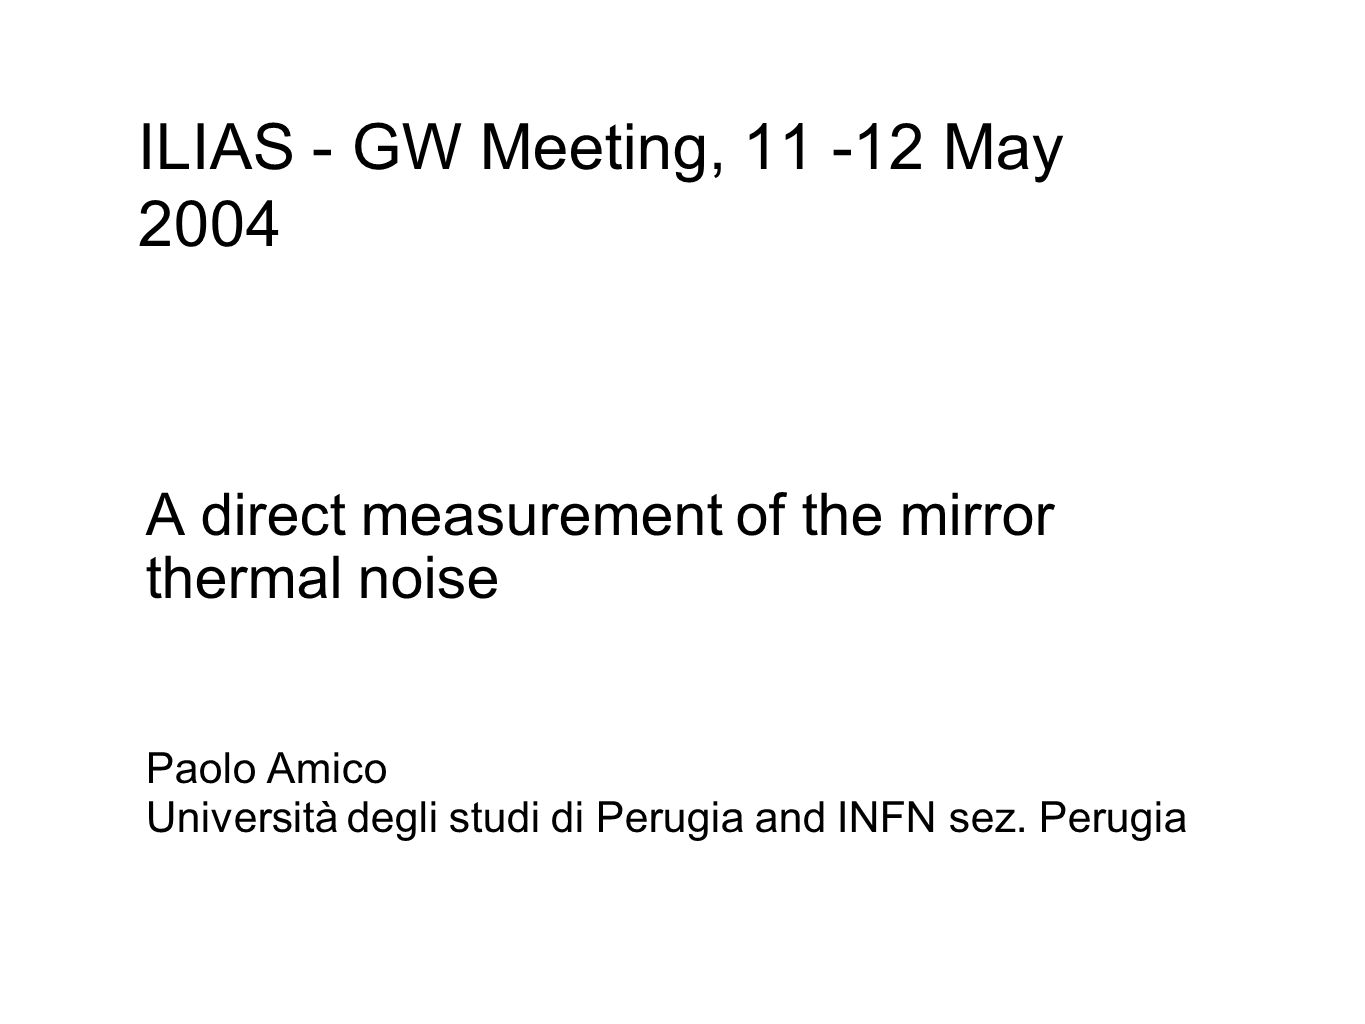 A direct measurement of the mirror thermal noise Paolo Amico Università degli studi di Perugia and INFN sez.